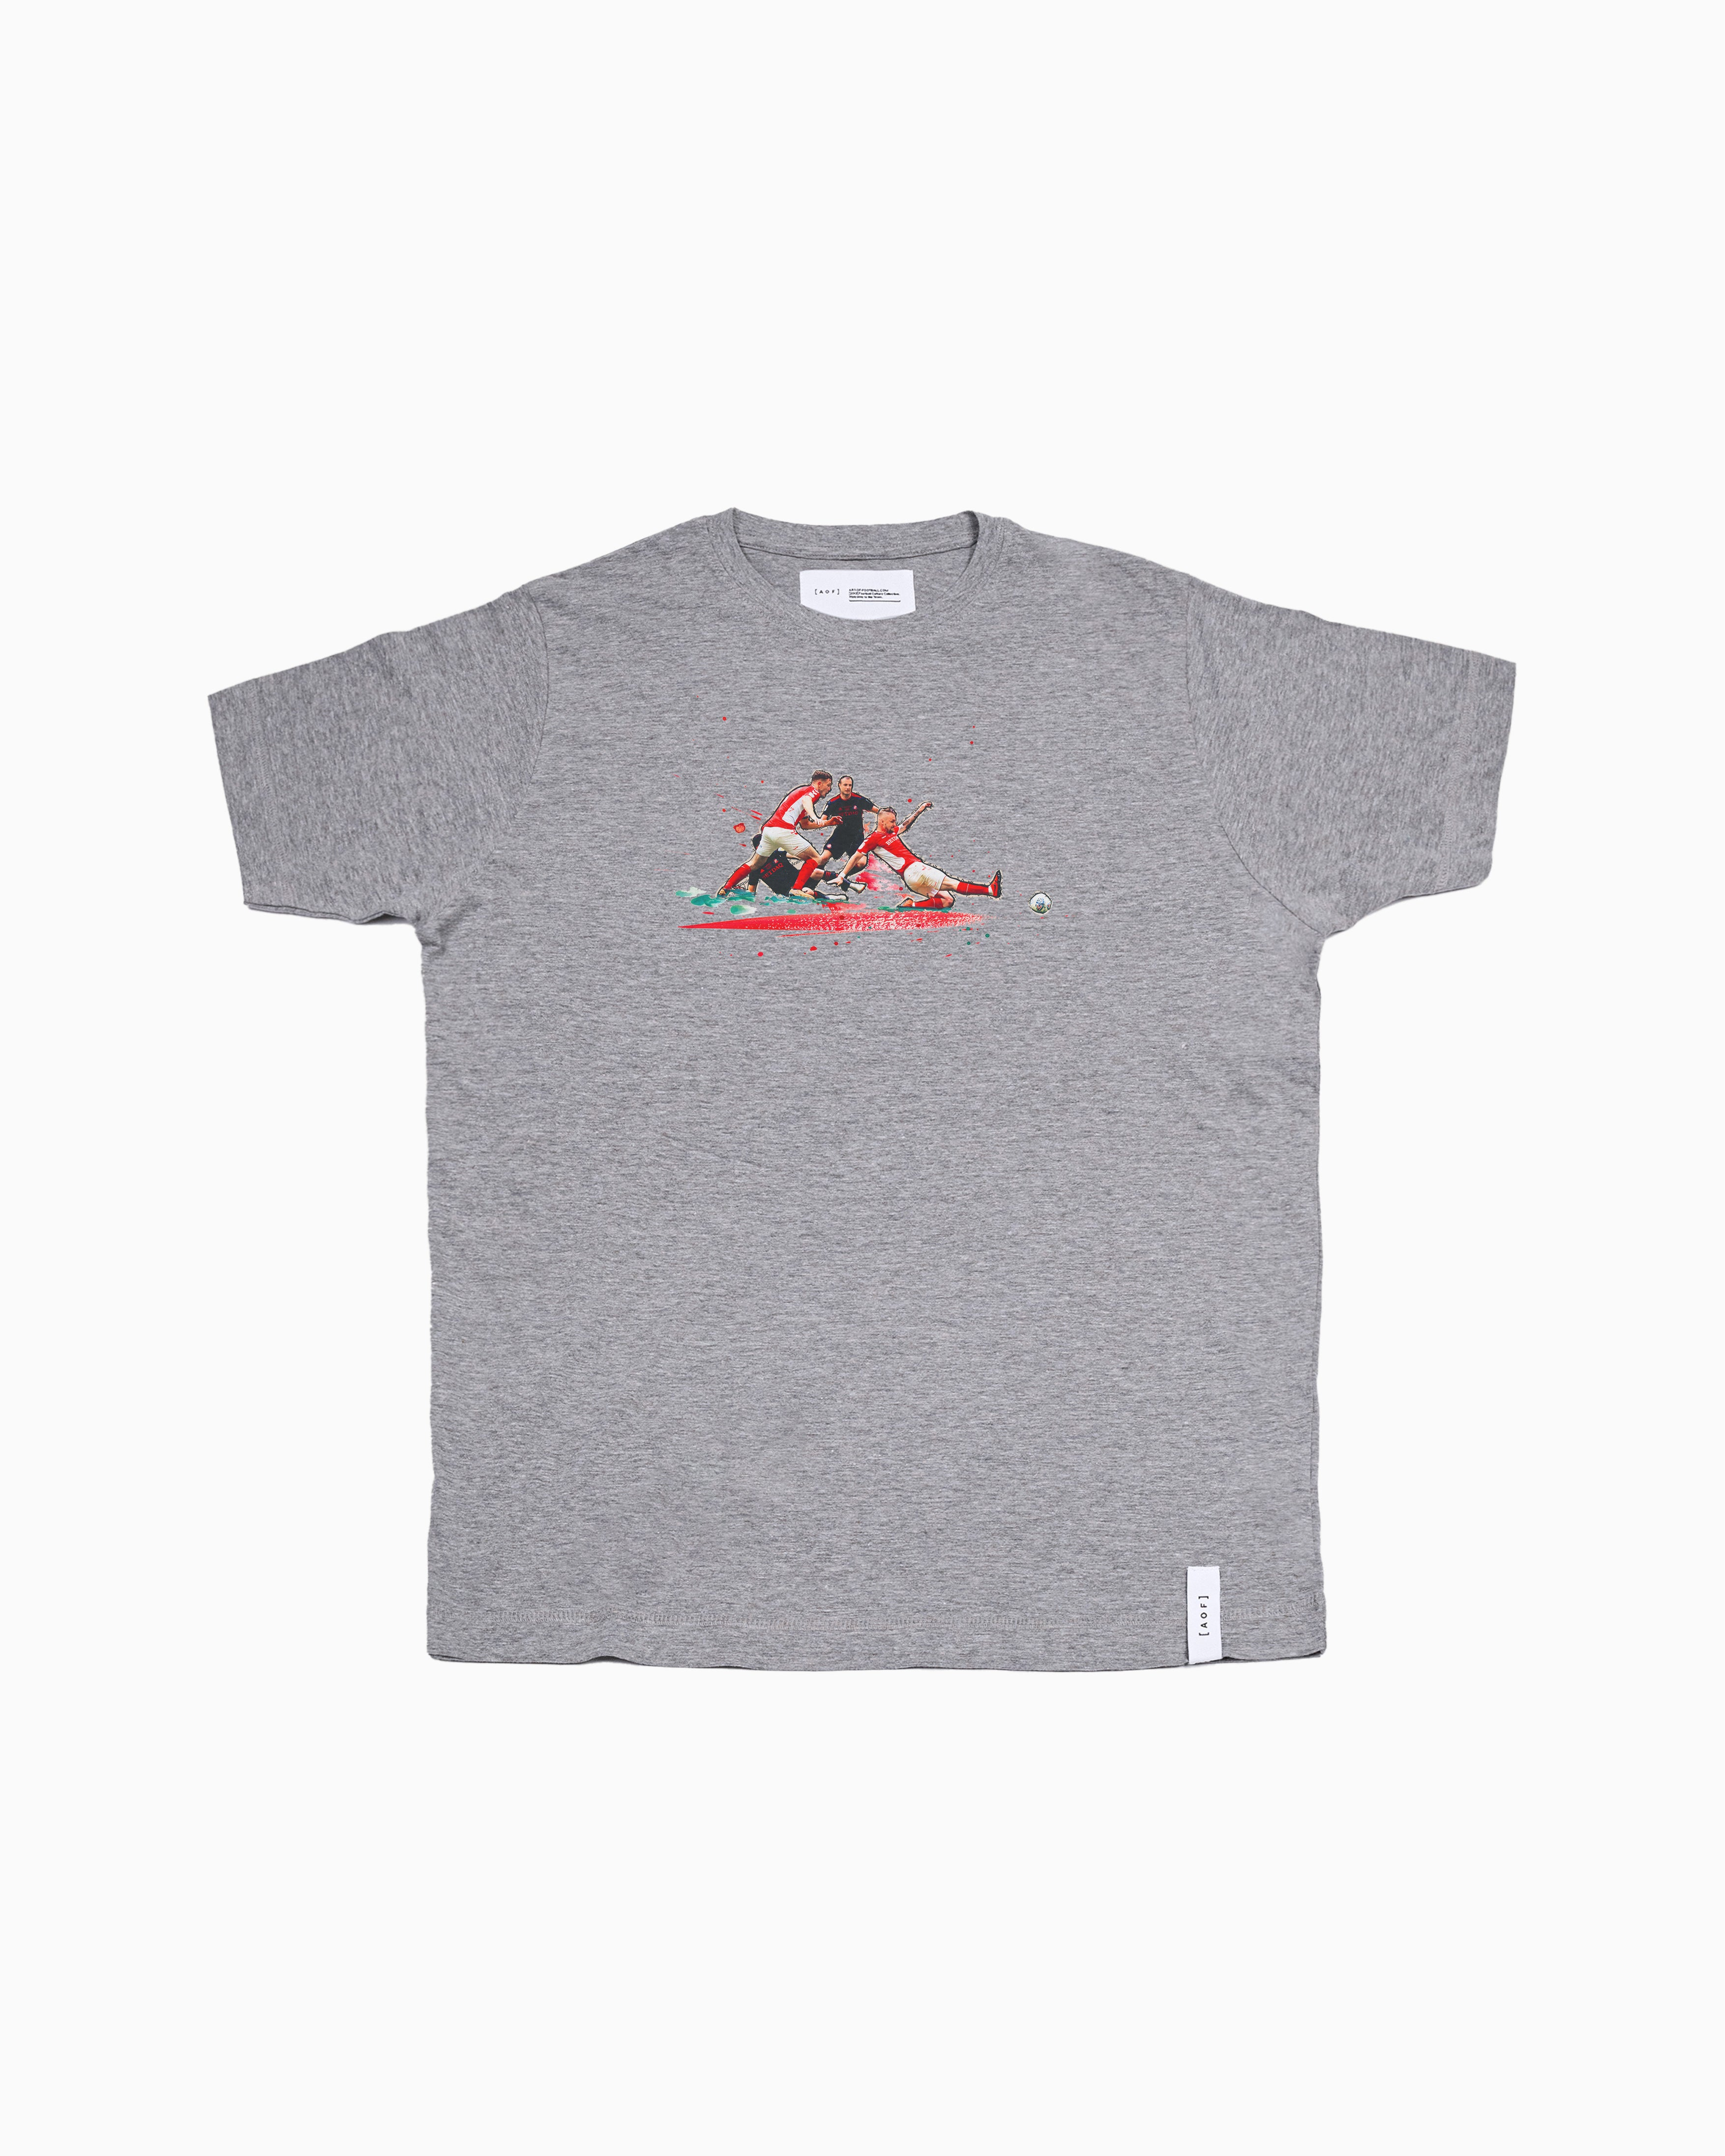 The Late, Late Show  - Tee or Sweat